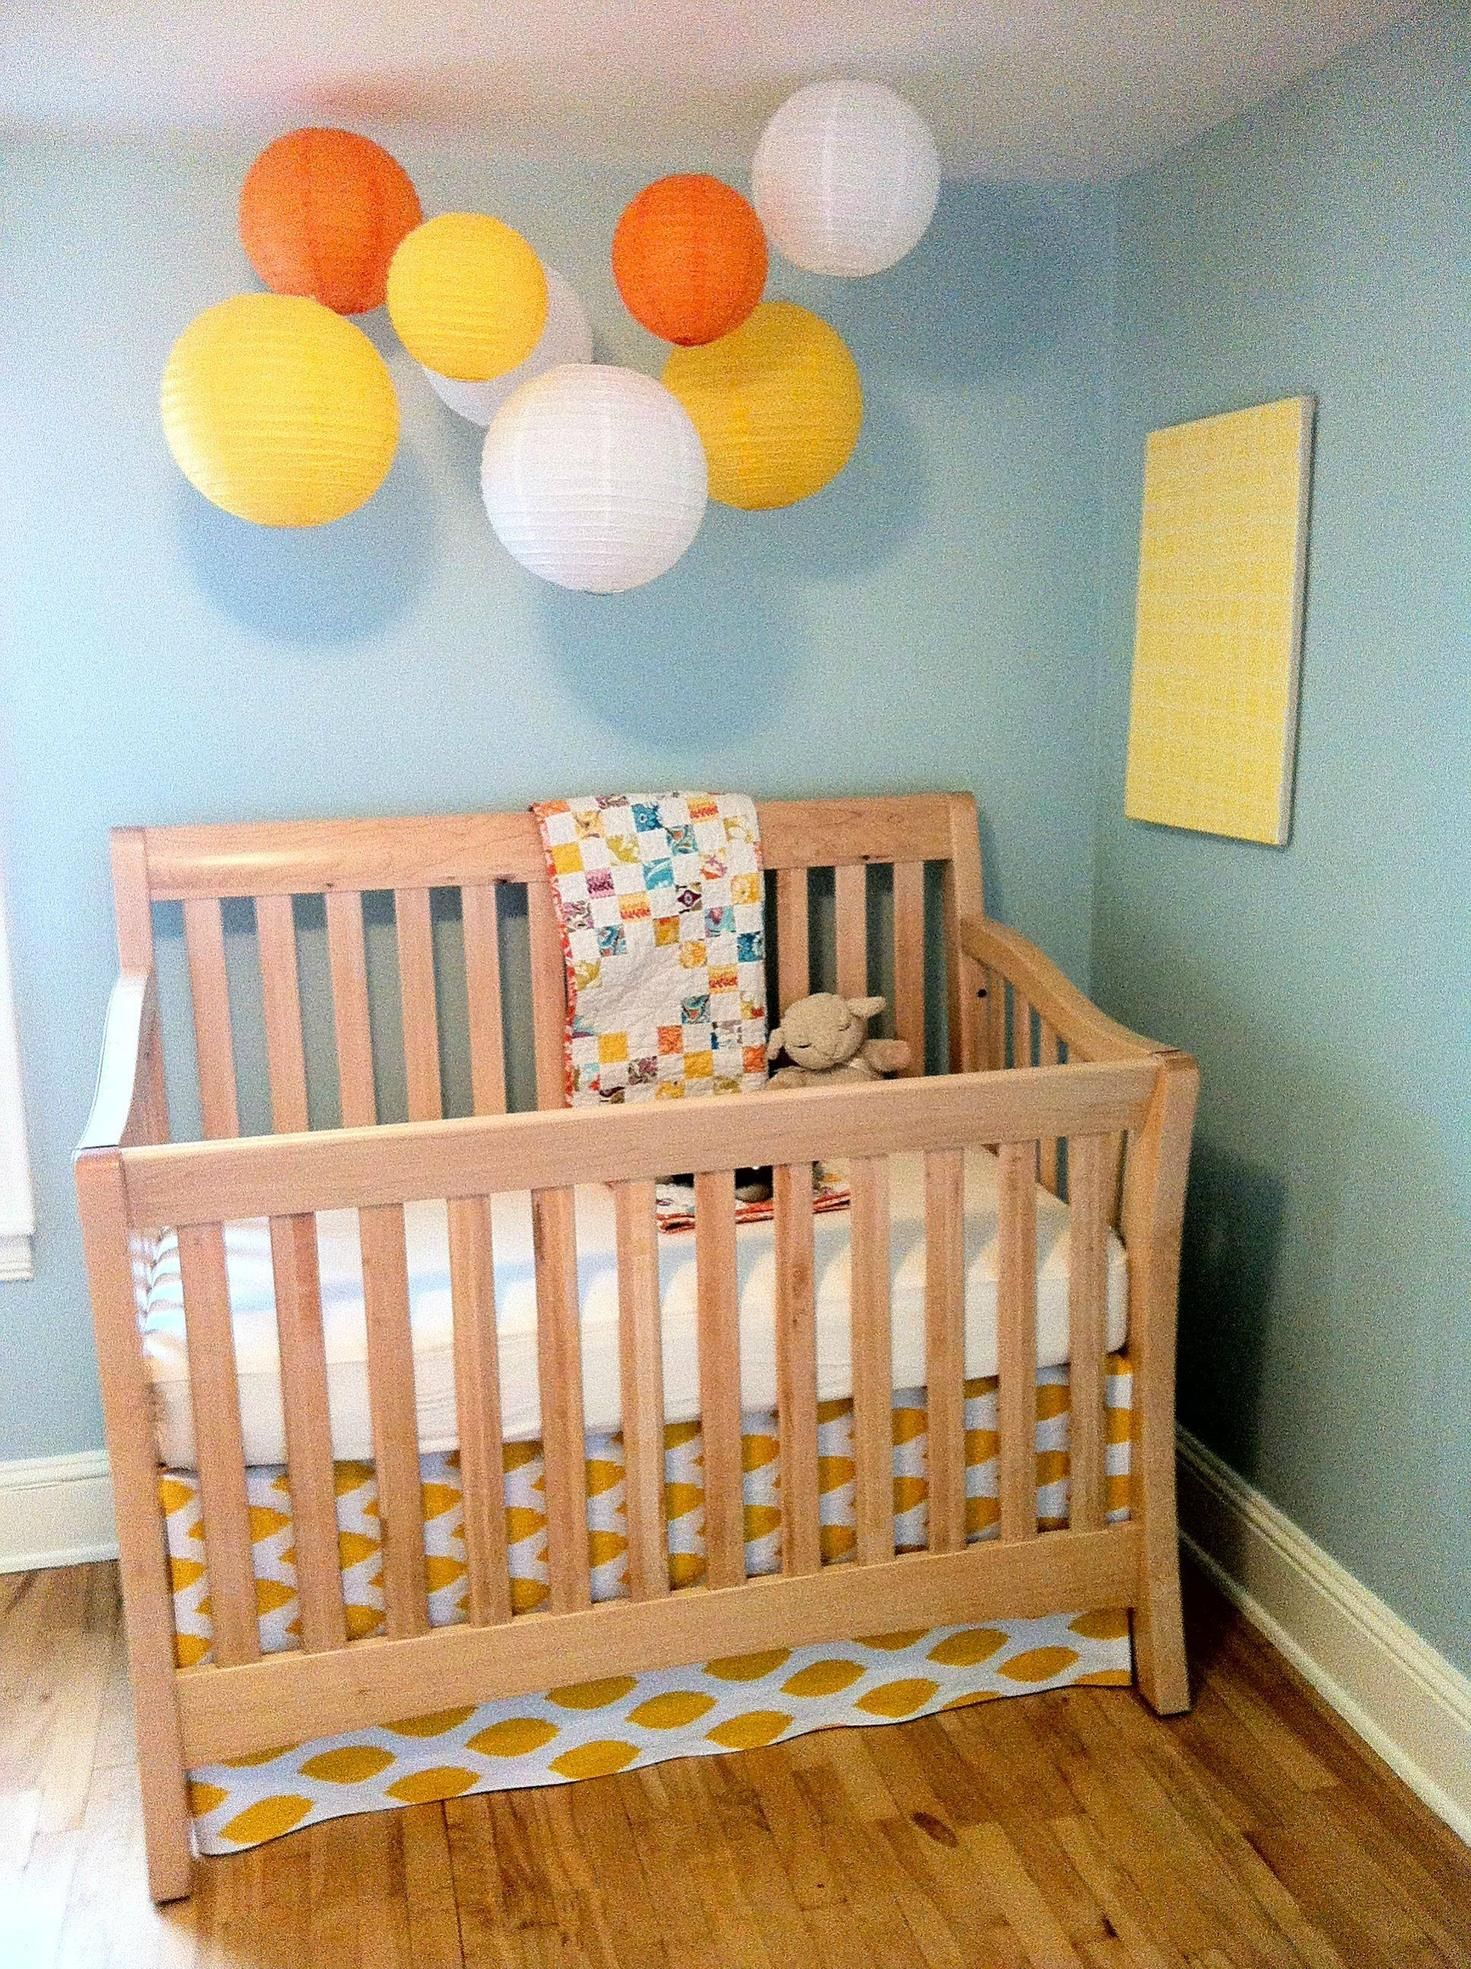 Alternatives to crib for babies - Chinese Lanterns Over The Crib Is A Cute Modern Alternative To A Mobile